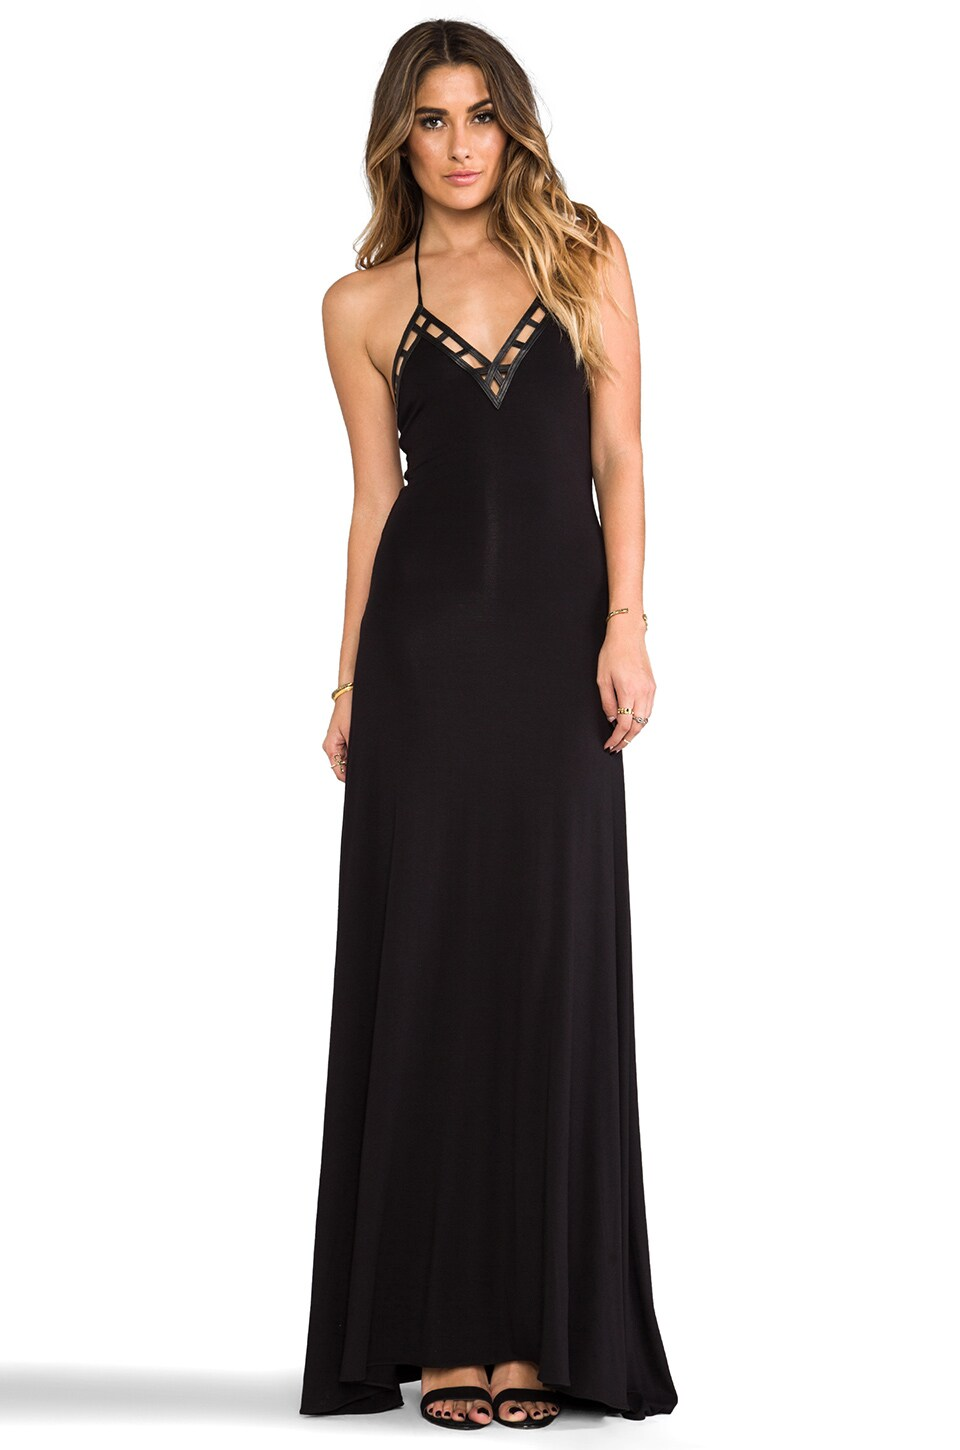 sky Kace Maxi Dress in Black